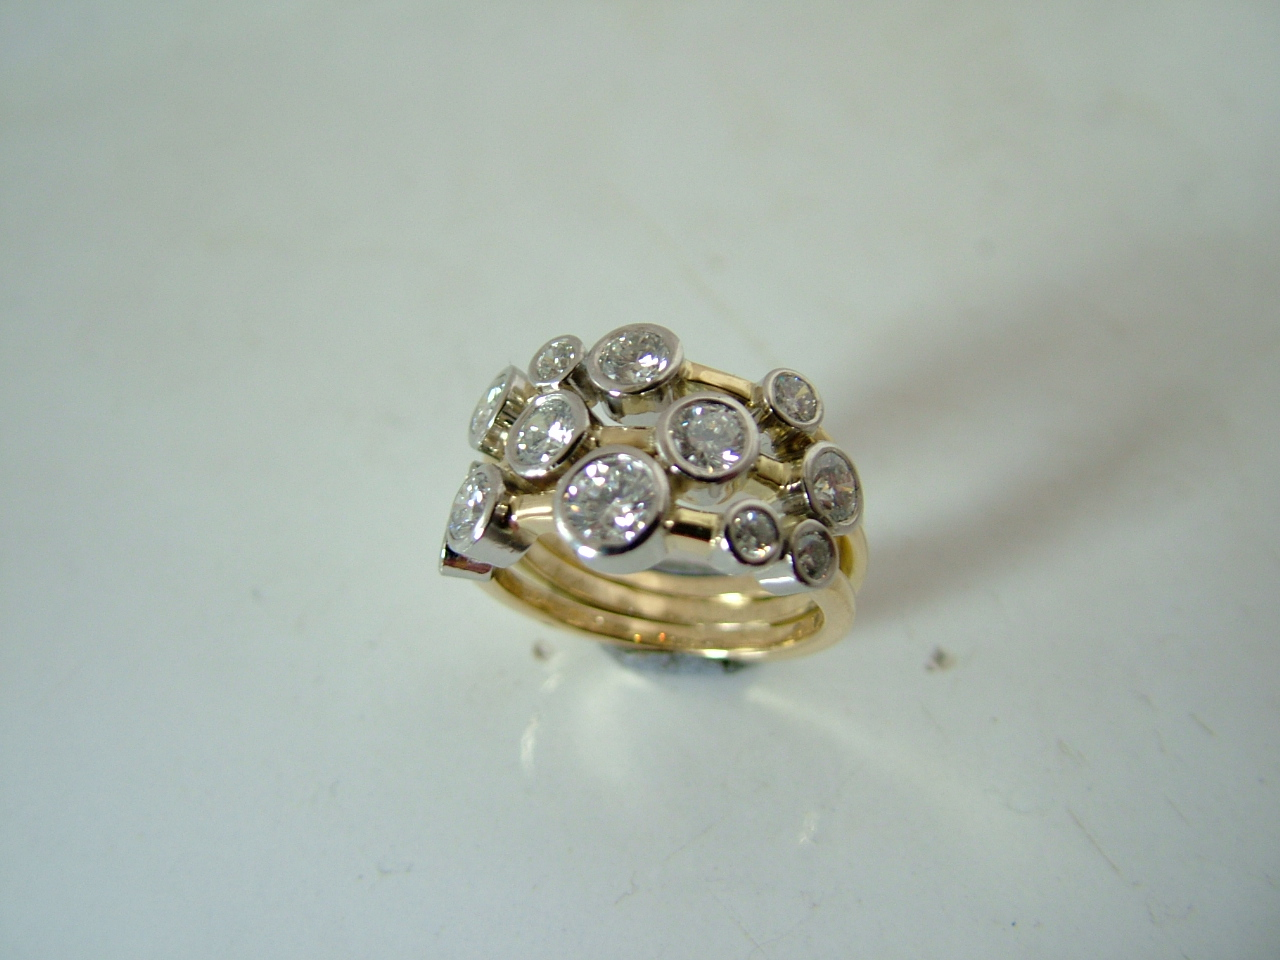 18ct yellow gold with diamonds set in platinum.